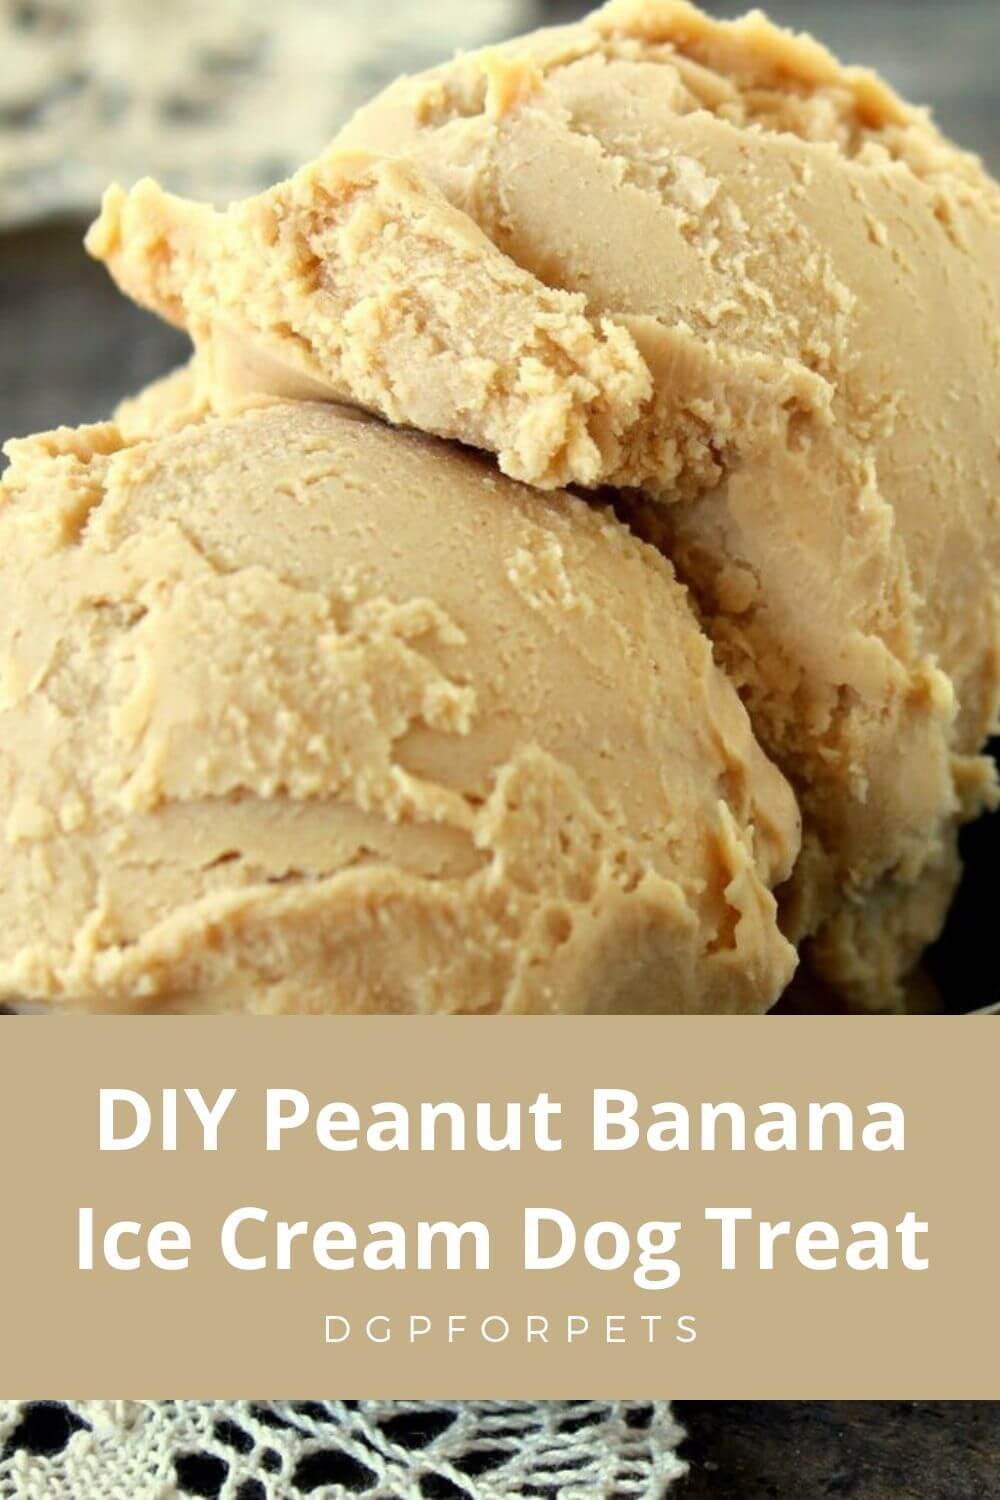 DIY Peanut Banana Ice Cream